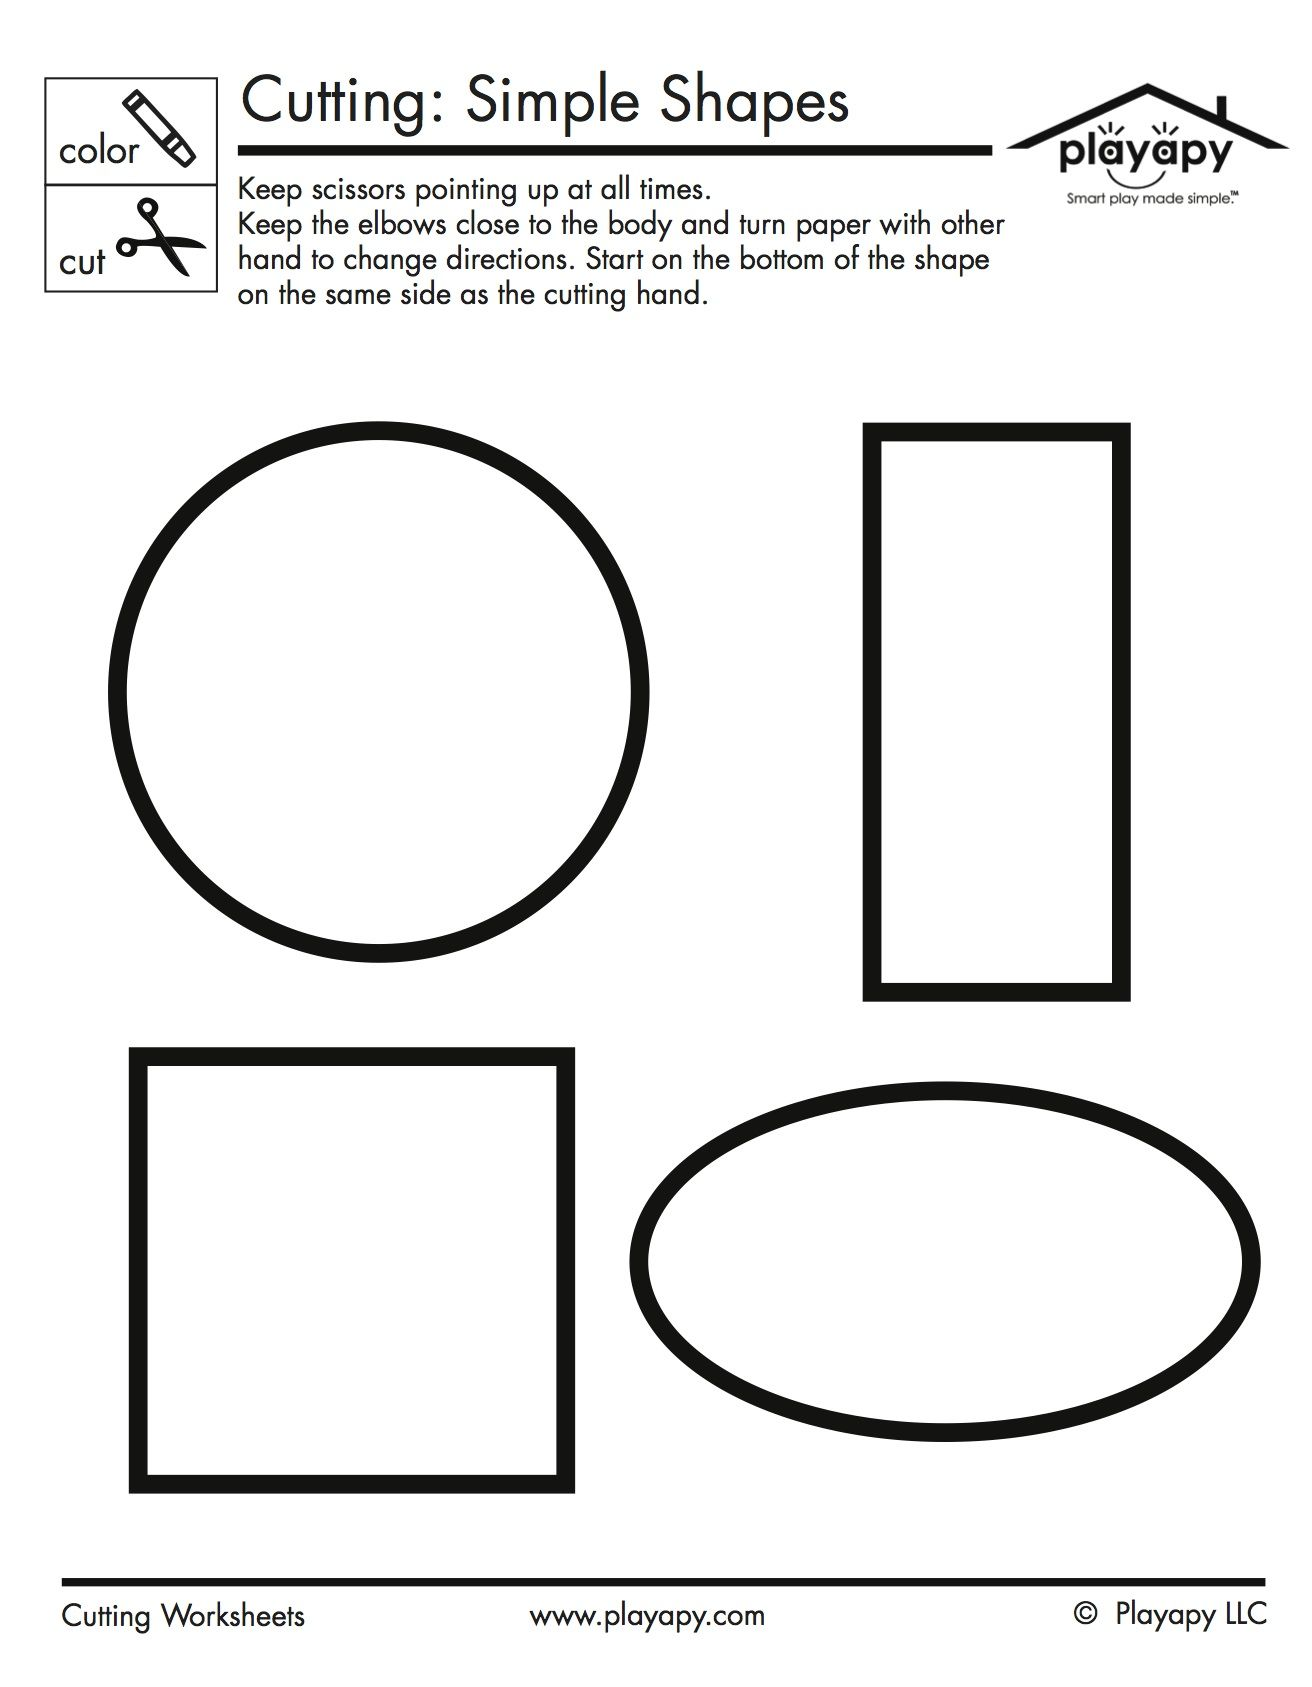 Colouring shapes activities - This Simple Worksheet Is Great For Practicing Coloring And Cutting Skills For Pre Schoolers